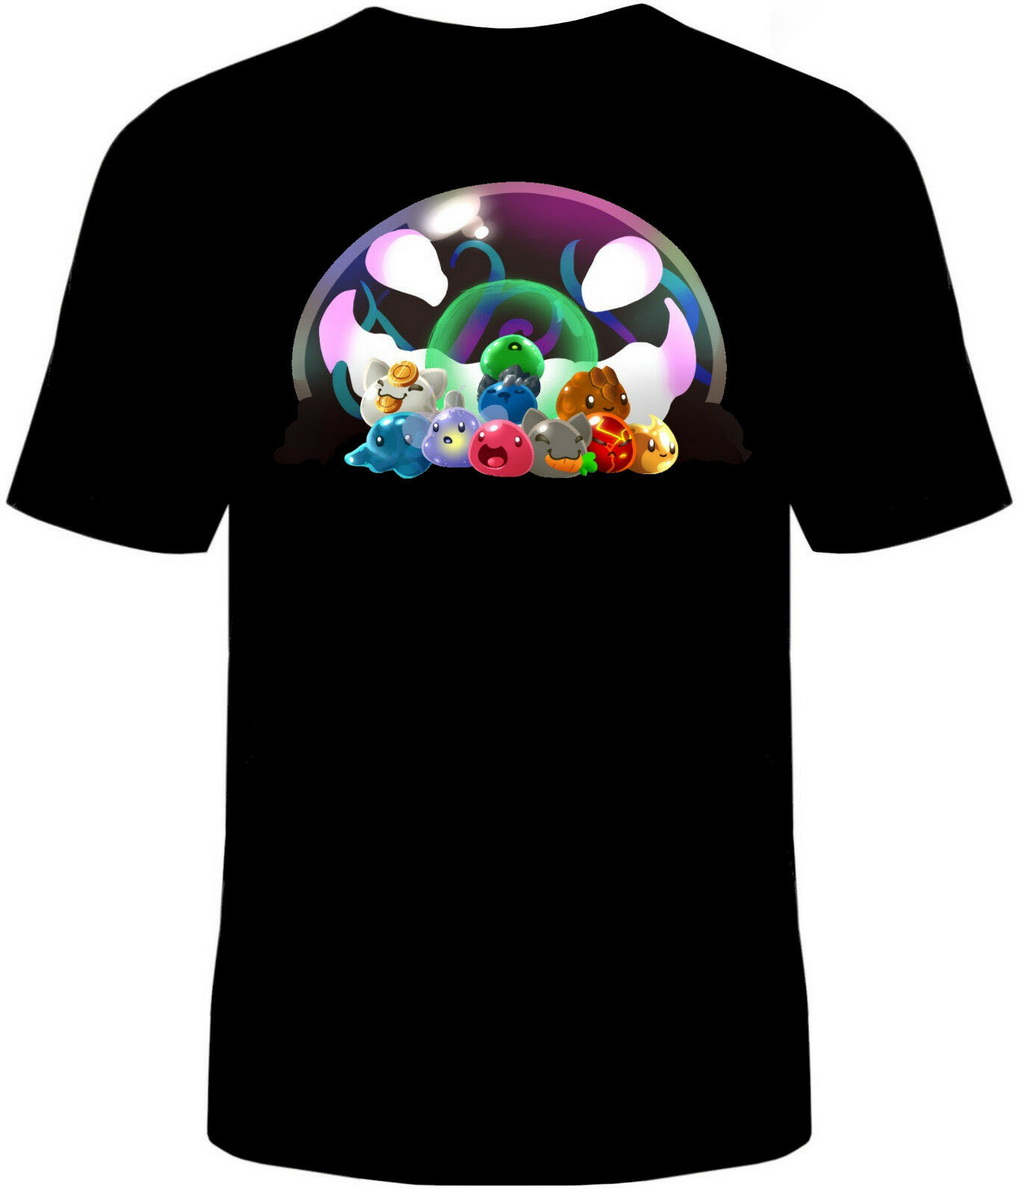 <font><b>Slime</b></font> <font><b>Rancher</b></font> T-<font><b>Shirt</b></font> Unisex Mens Cotton <font><b>Slimes</b></font> Tarr Video Game Classic Unique Tops TEE <font><b>Shirt</b></font> image